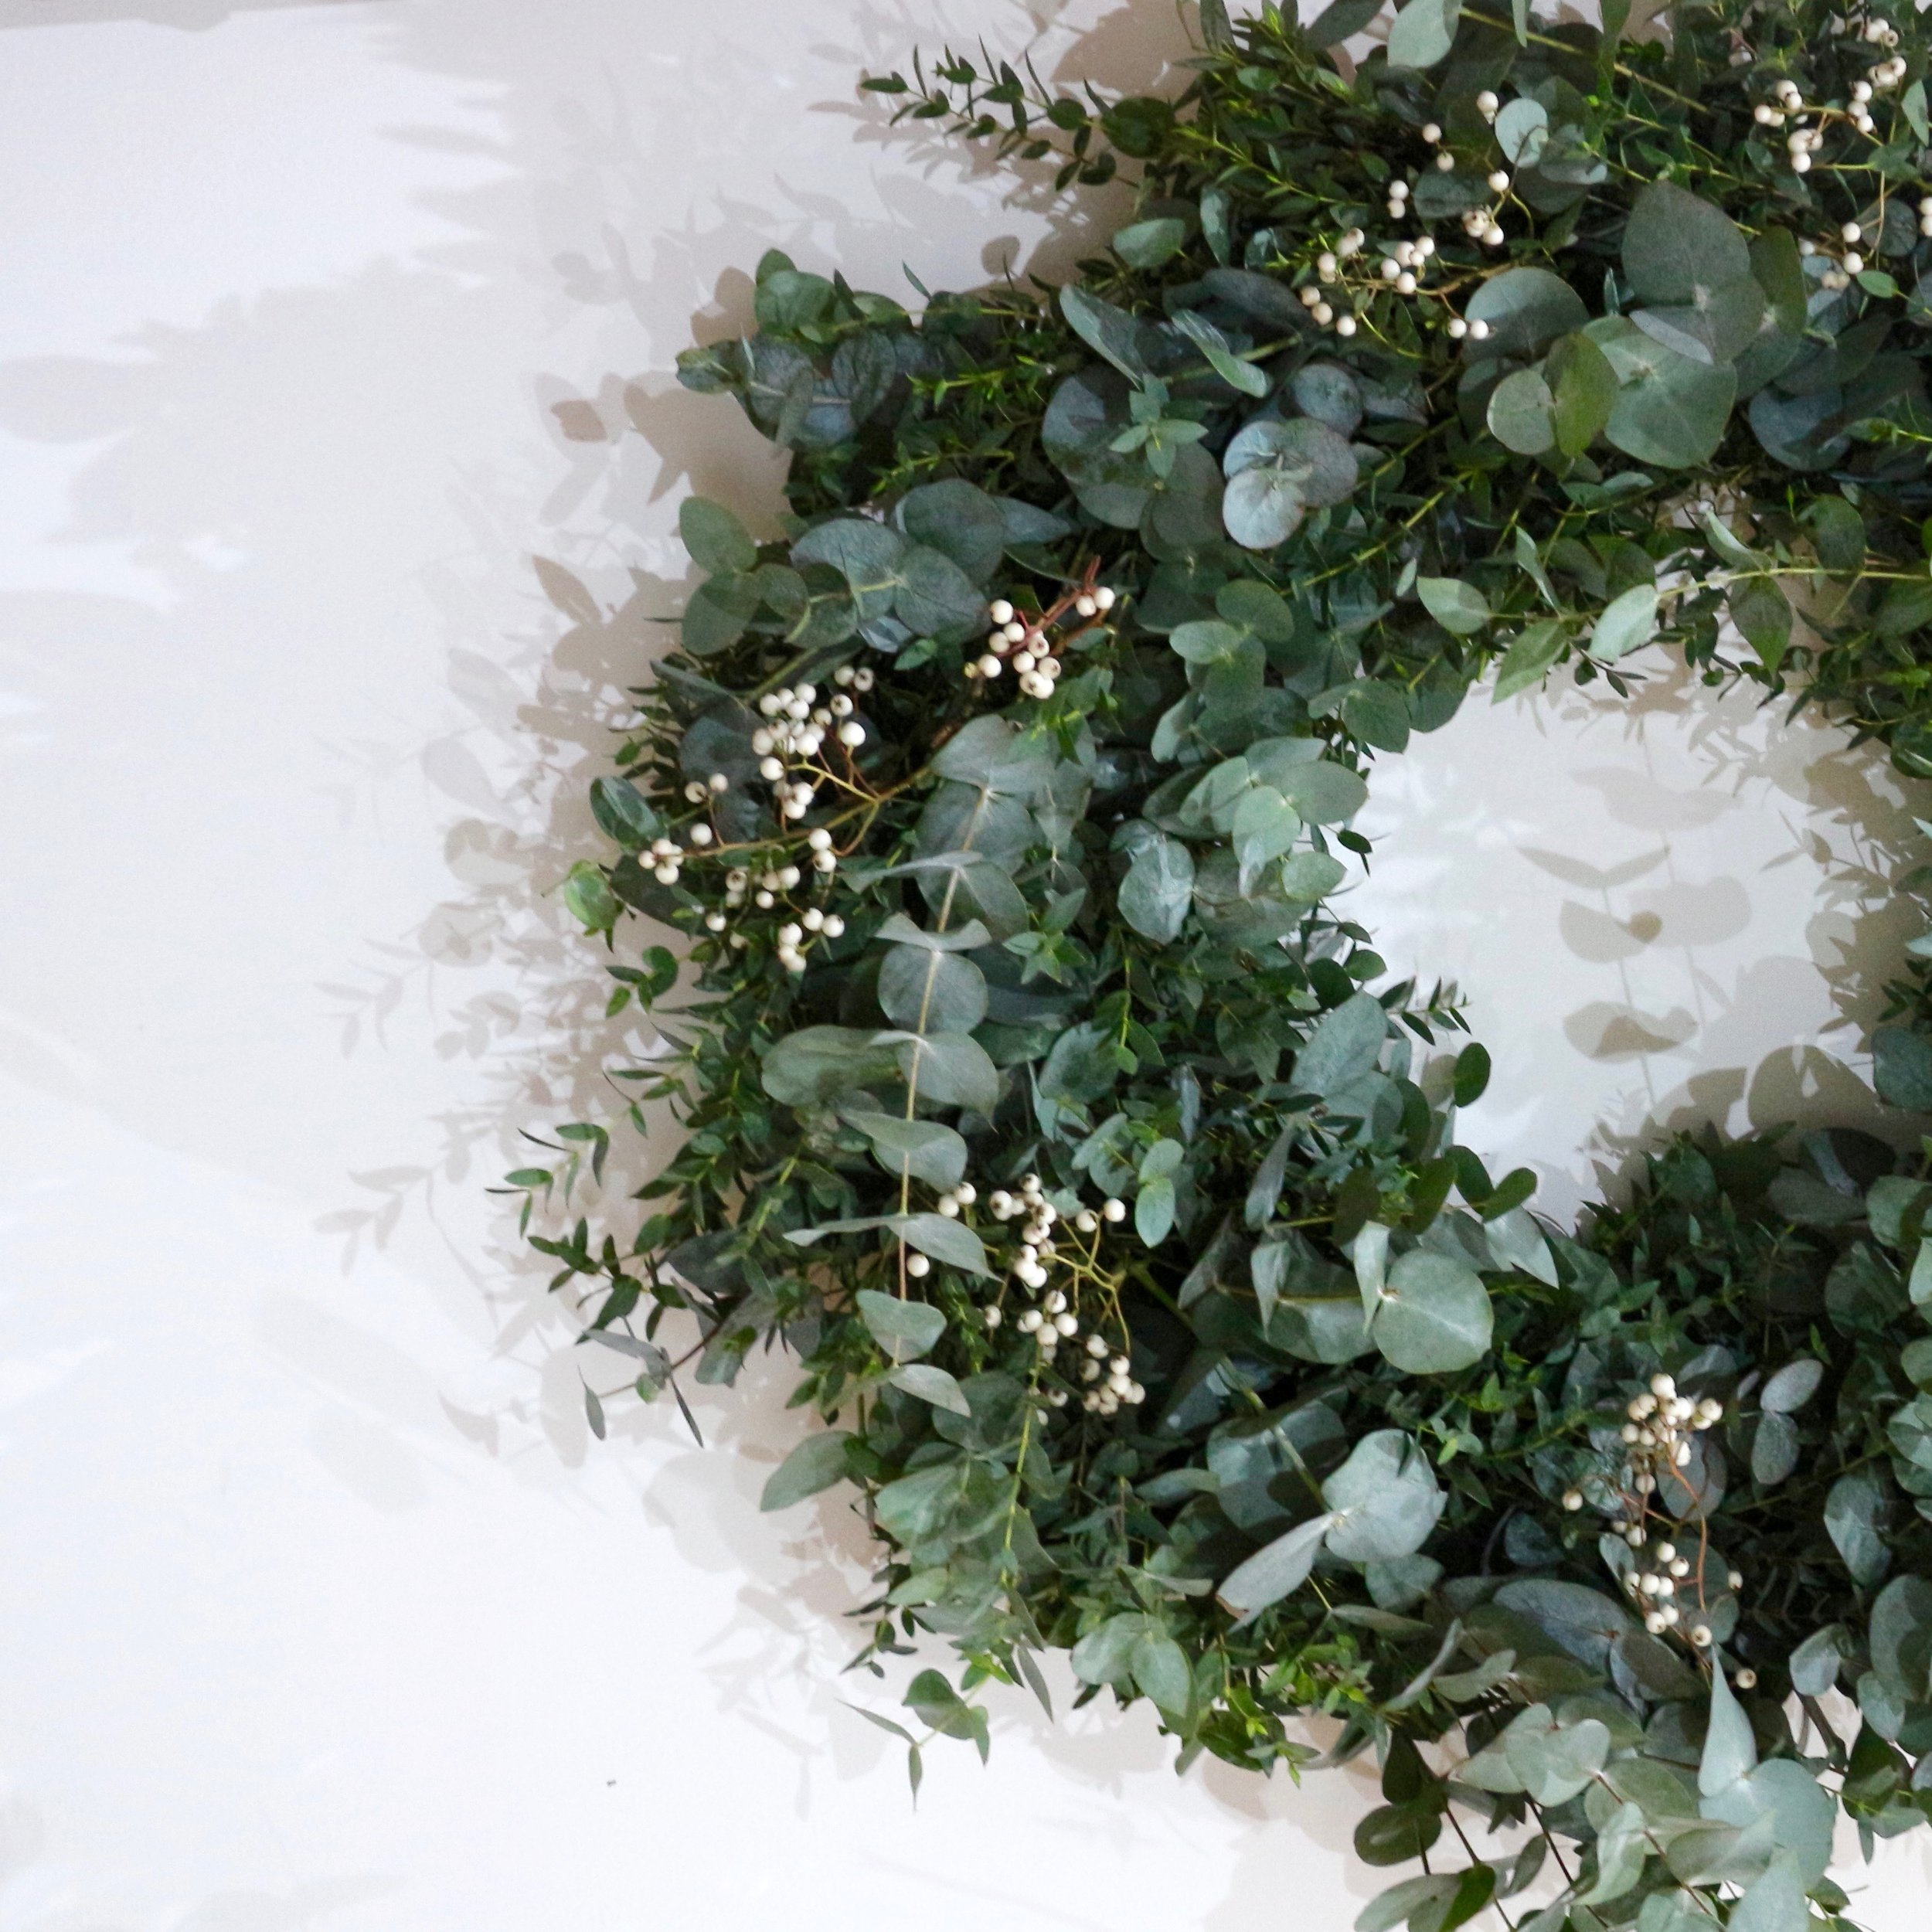 Door wreath - Materials may vary depending on availability at the time of sourcing.